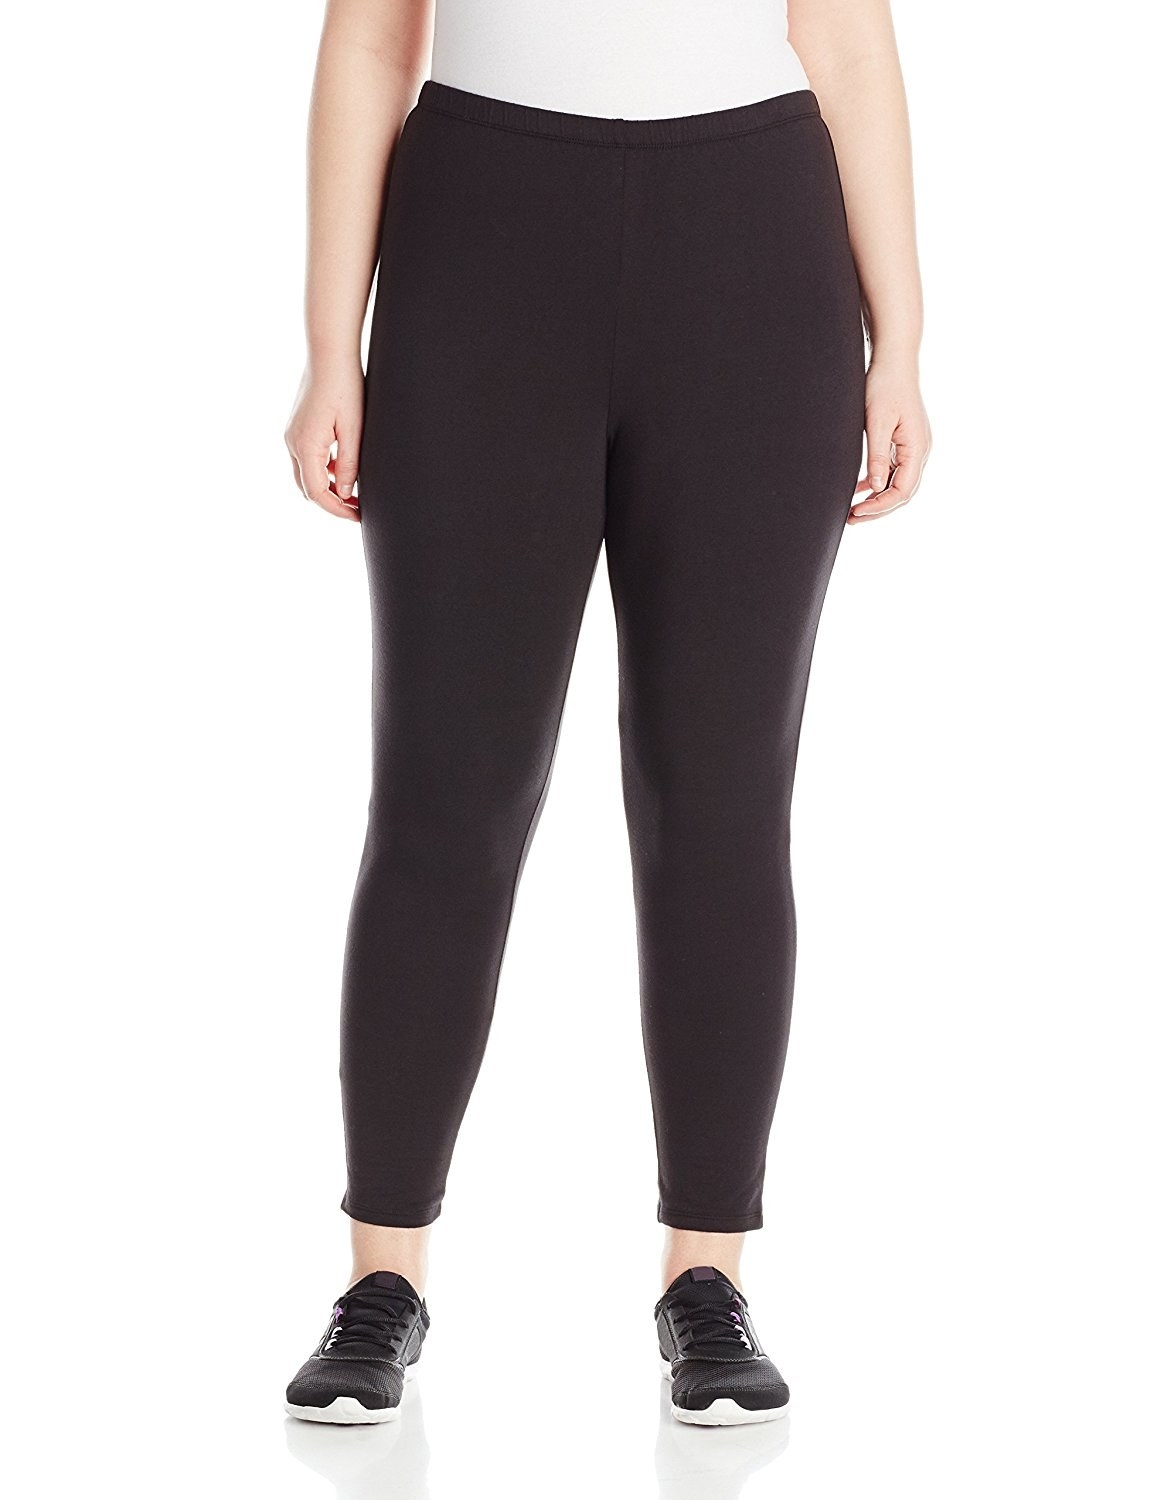 f7a3b9c217ec5b Jersey leggings perfect for both running errands (ugh) and lounging around  your room (yay). Versatility, folks.